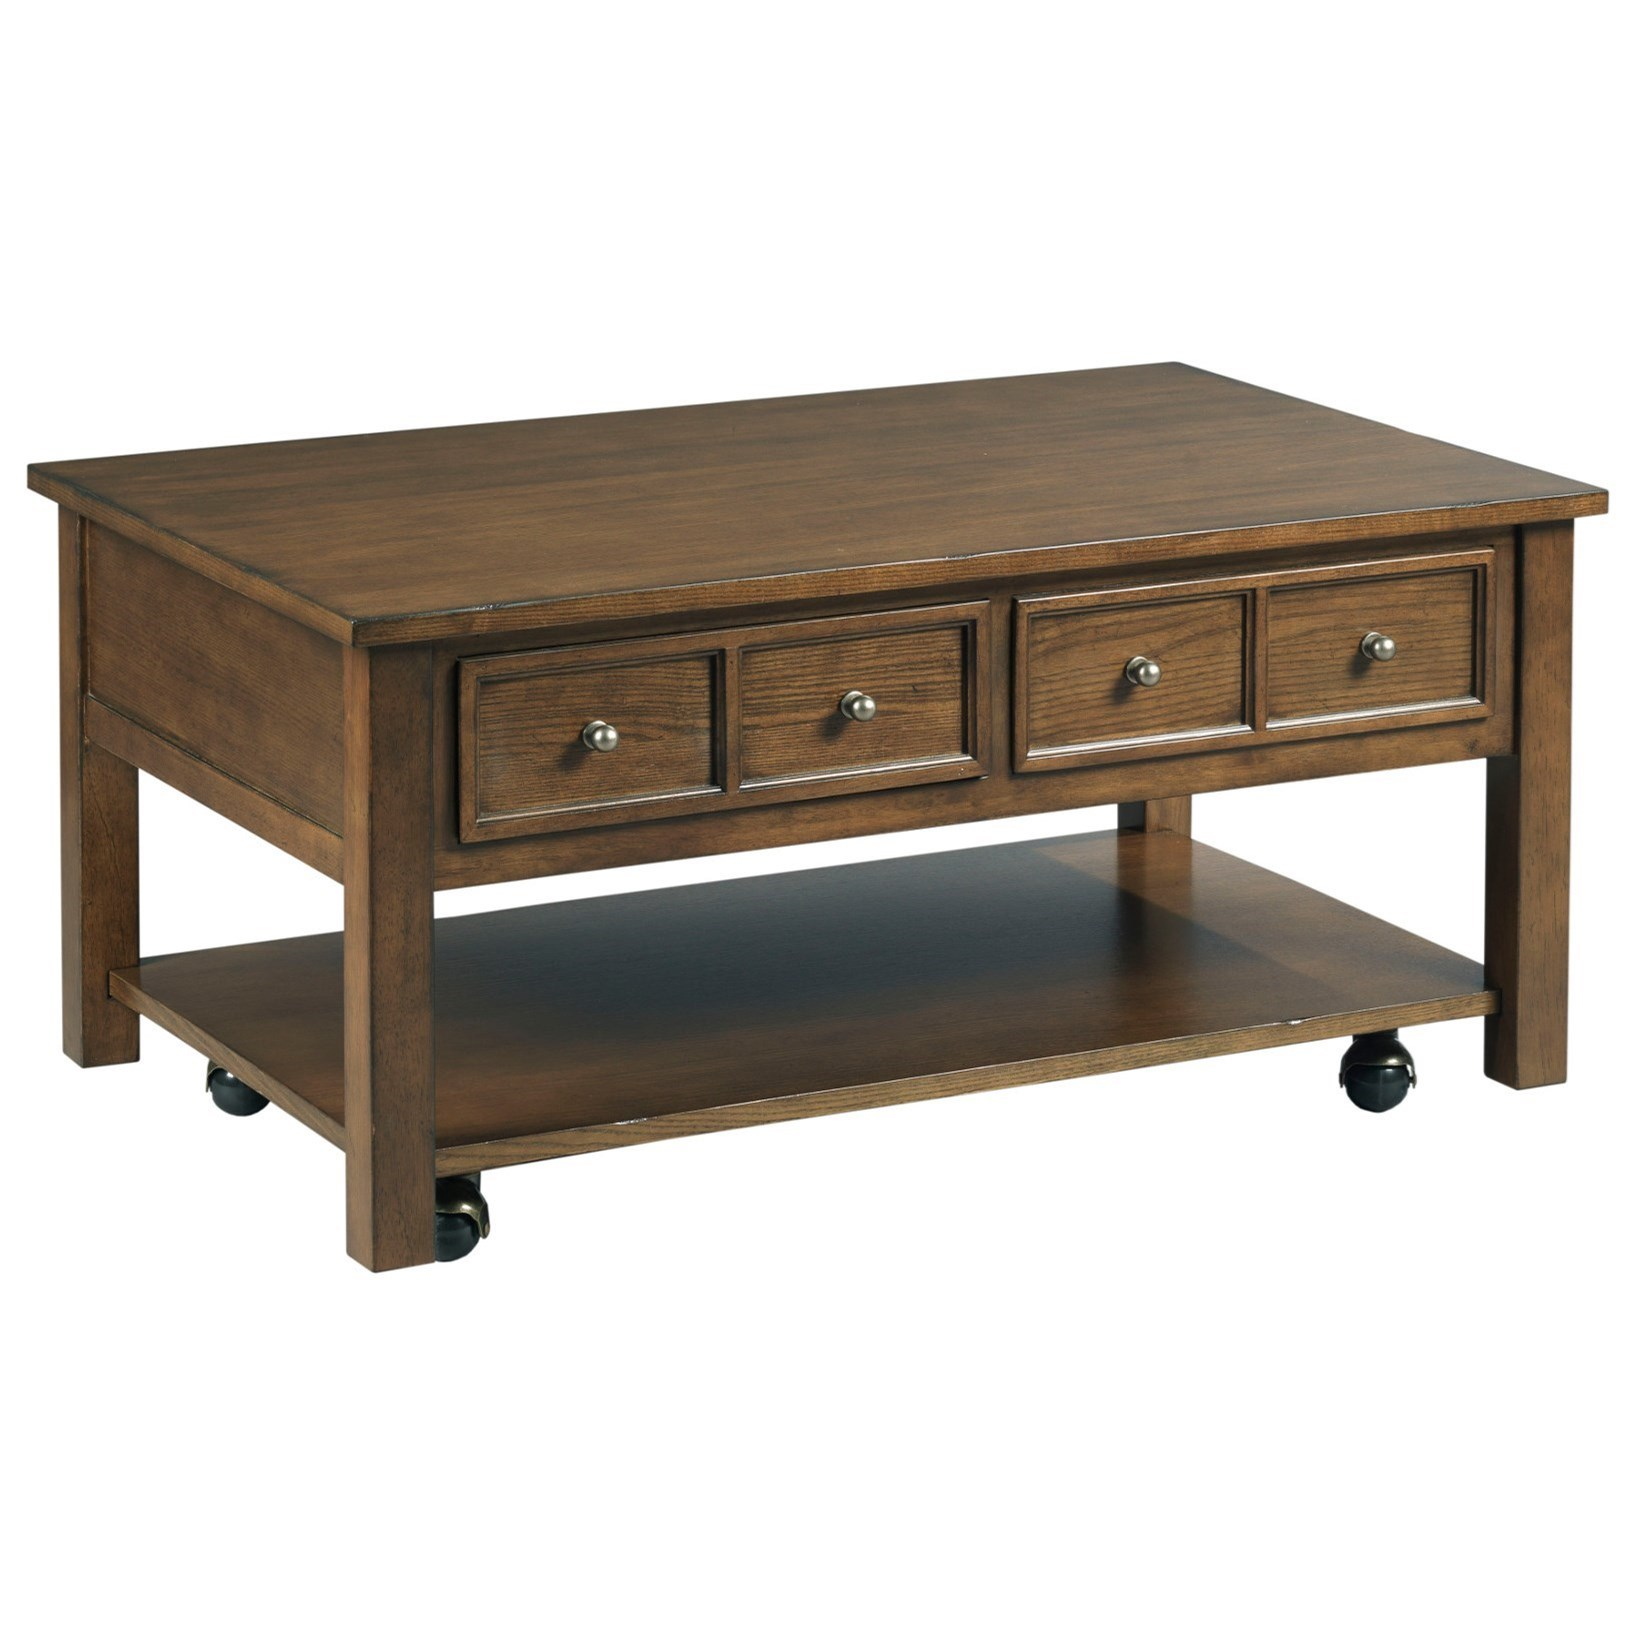 Small Rectangular Side Tables England Champlain H775912 Small Rectangular 2 Drawer